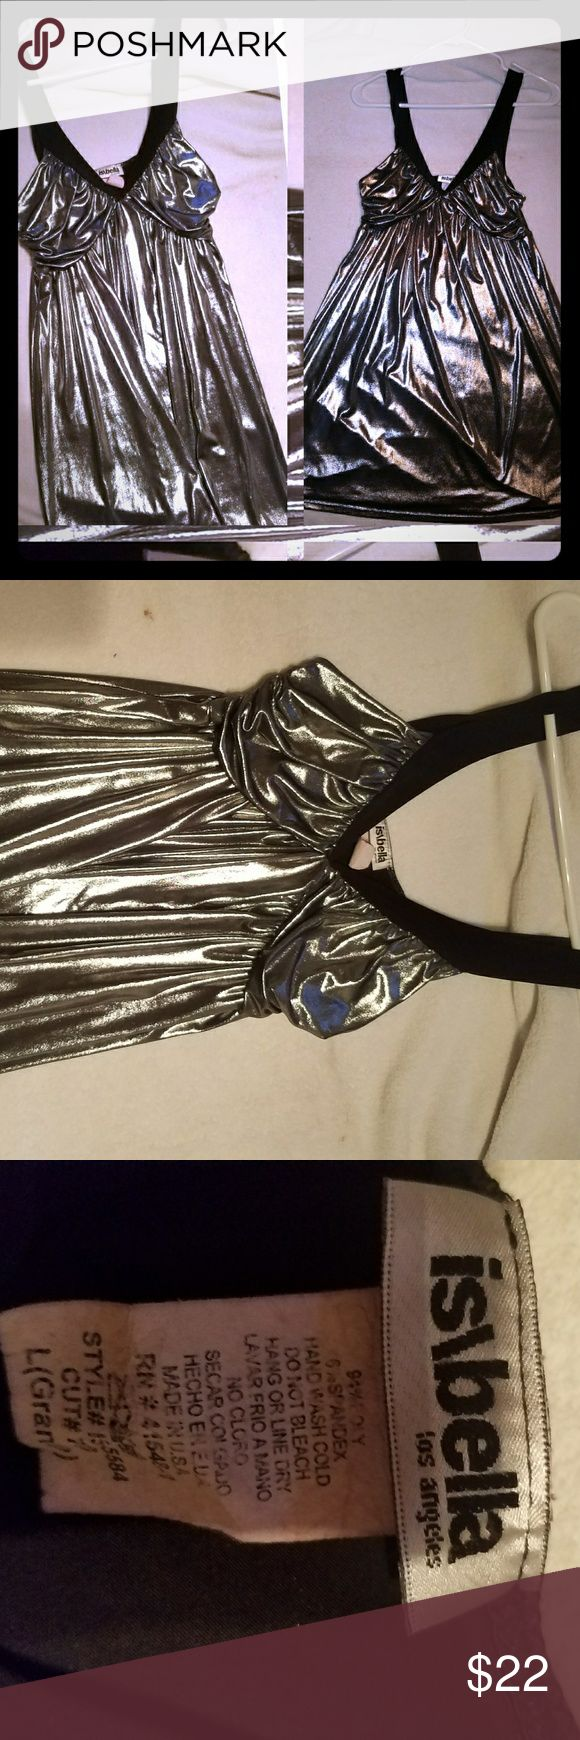 Mini Short Metallic Silver Summer Dress Size Large This is a one-of-a-kind dress that I bought in a small boutique in Los Angeles . It's a metallic short mini summer dress ...Very flowy, very lightweight , very comfortable,and  elegant fun dress. It's a very versatile  you could wear it to the beach with flip flops on or dress it up with a nice high heel and go to a club or a nice dinner it's a perfect piece to have while traveling . Dresses Mini